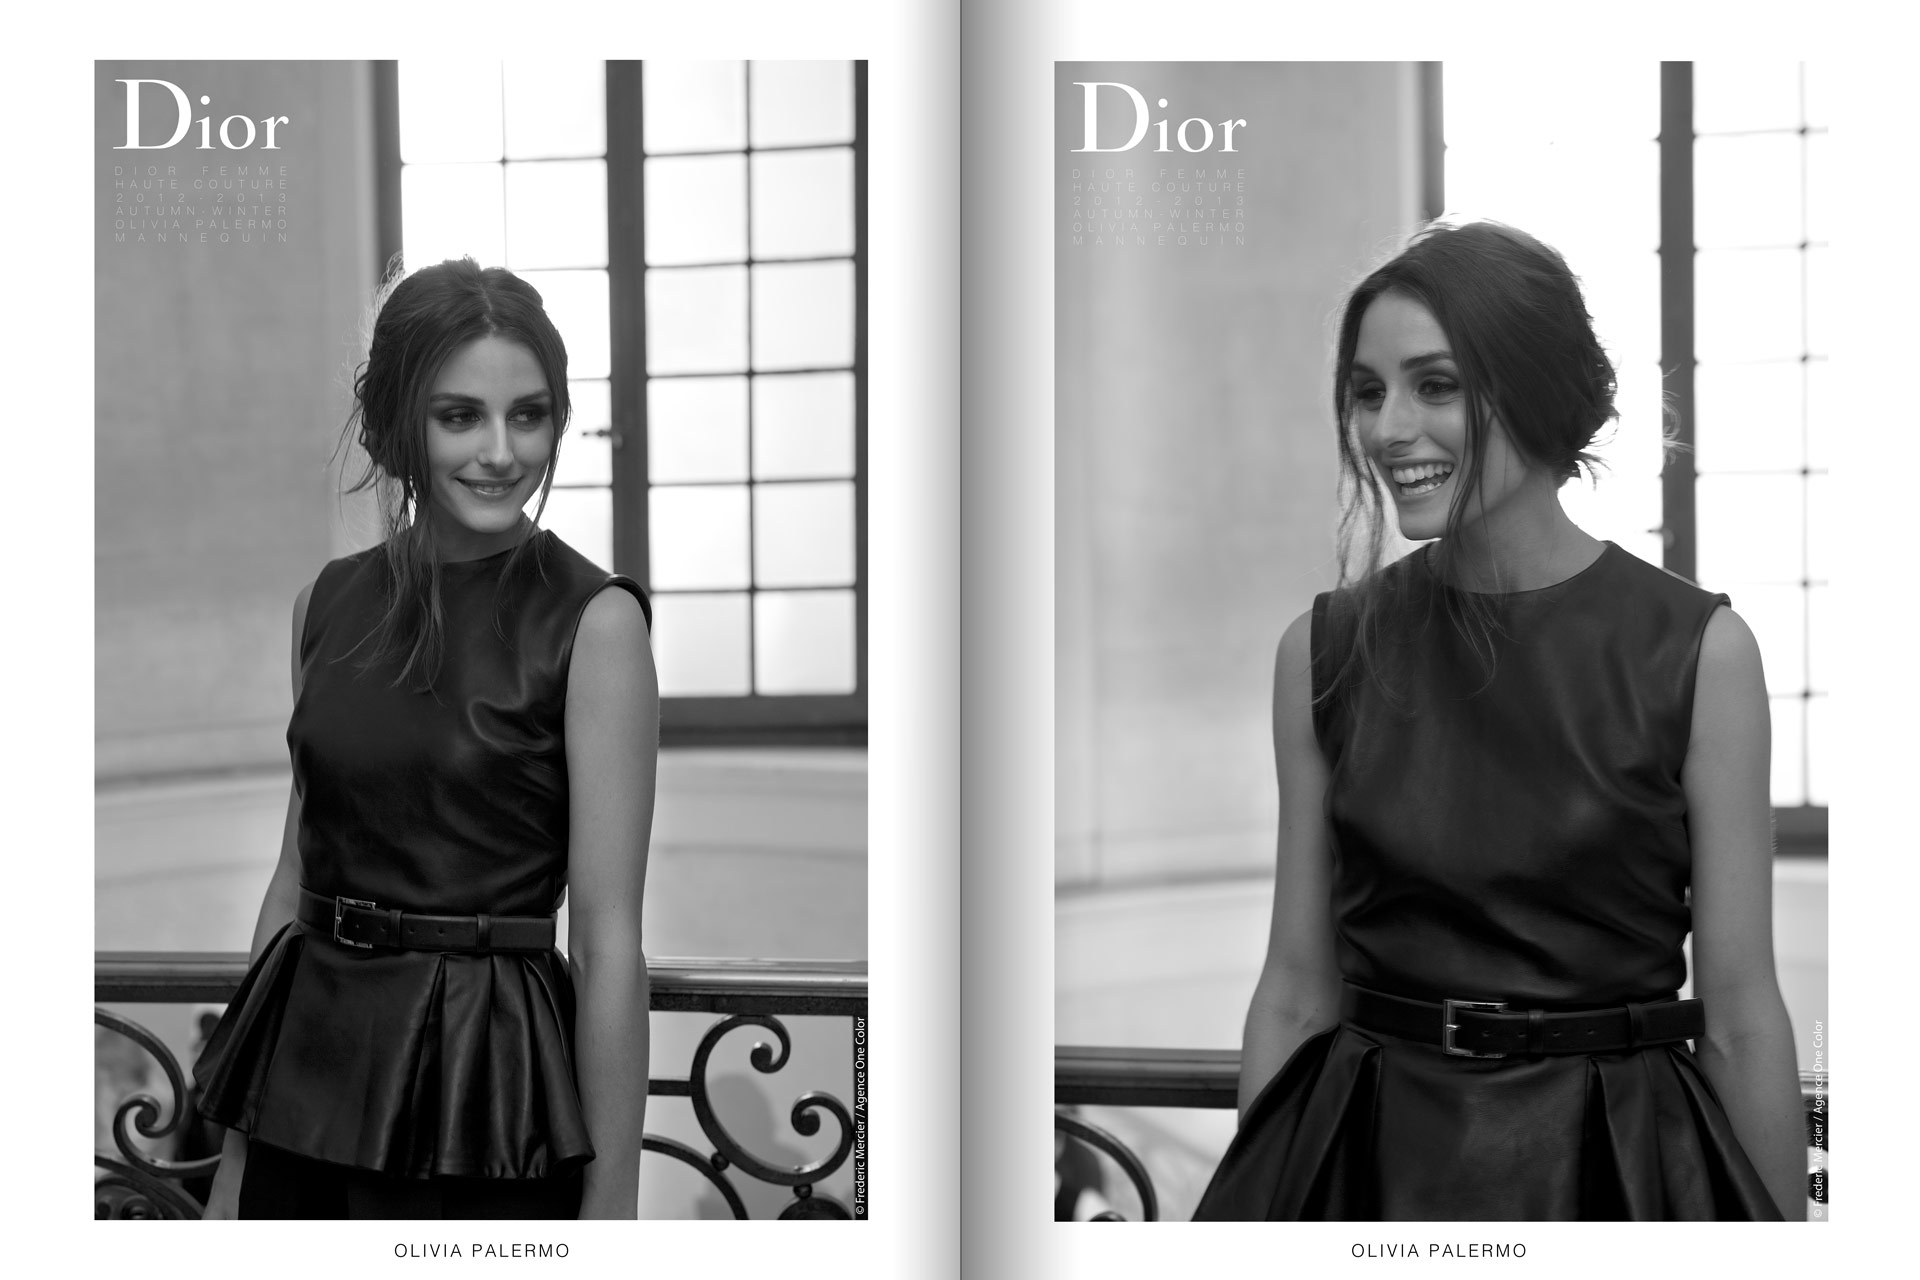 frederic mercier fashion photographer one color portraits people olivia palermo for dior